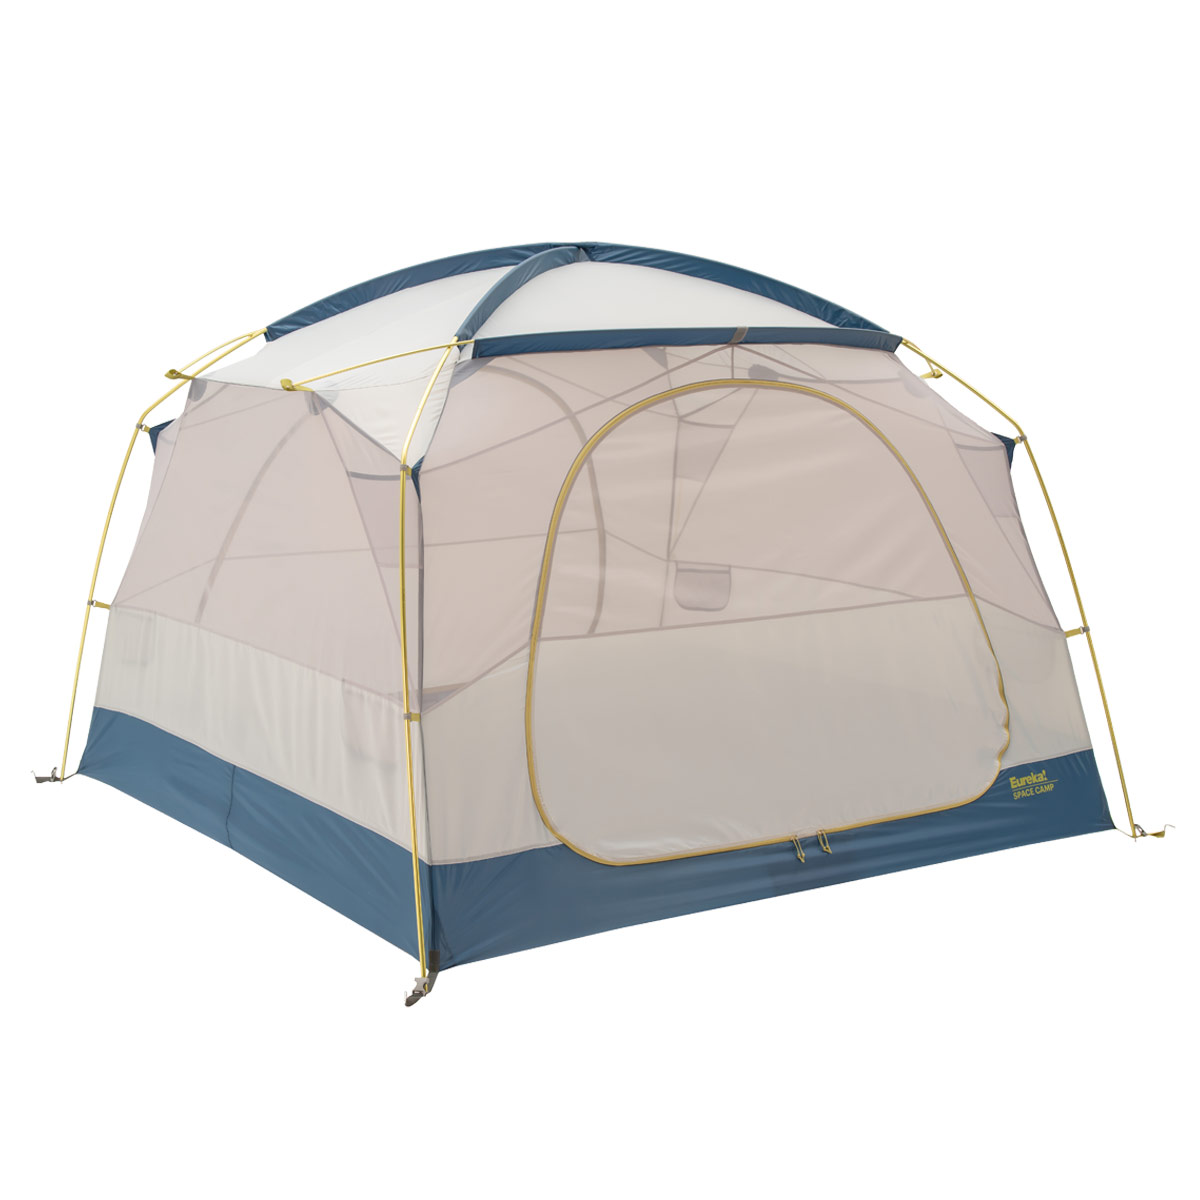 Space Camp 6 Tent